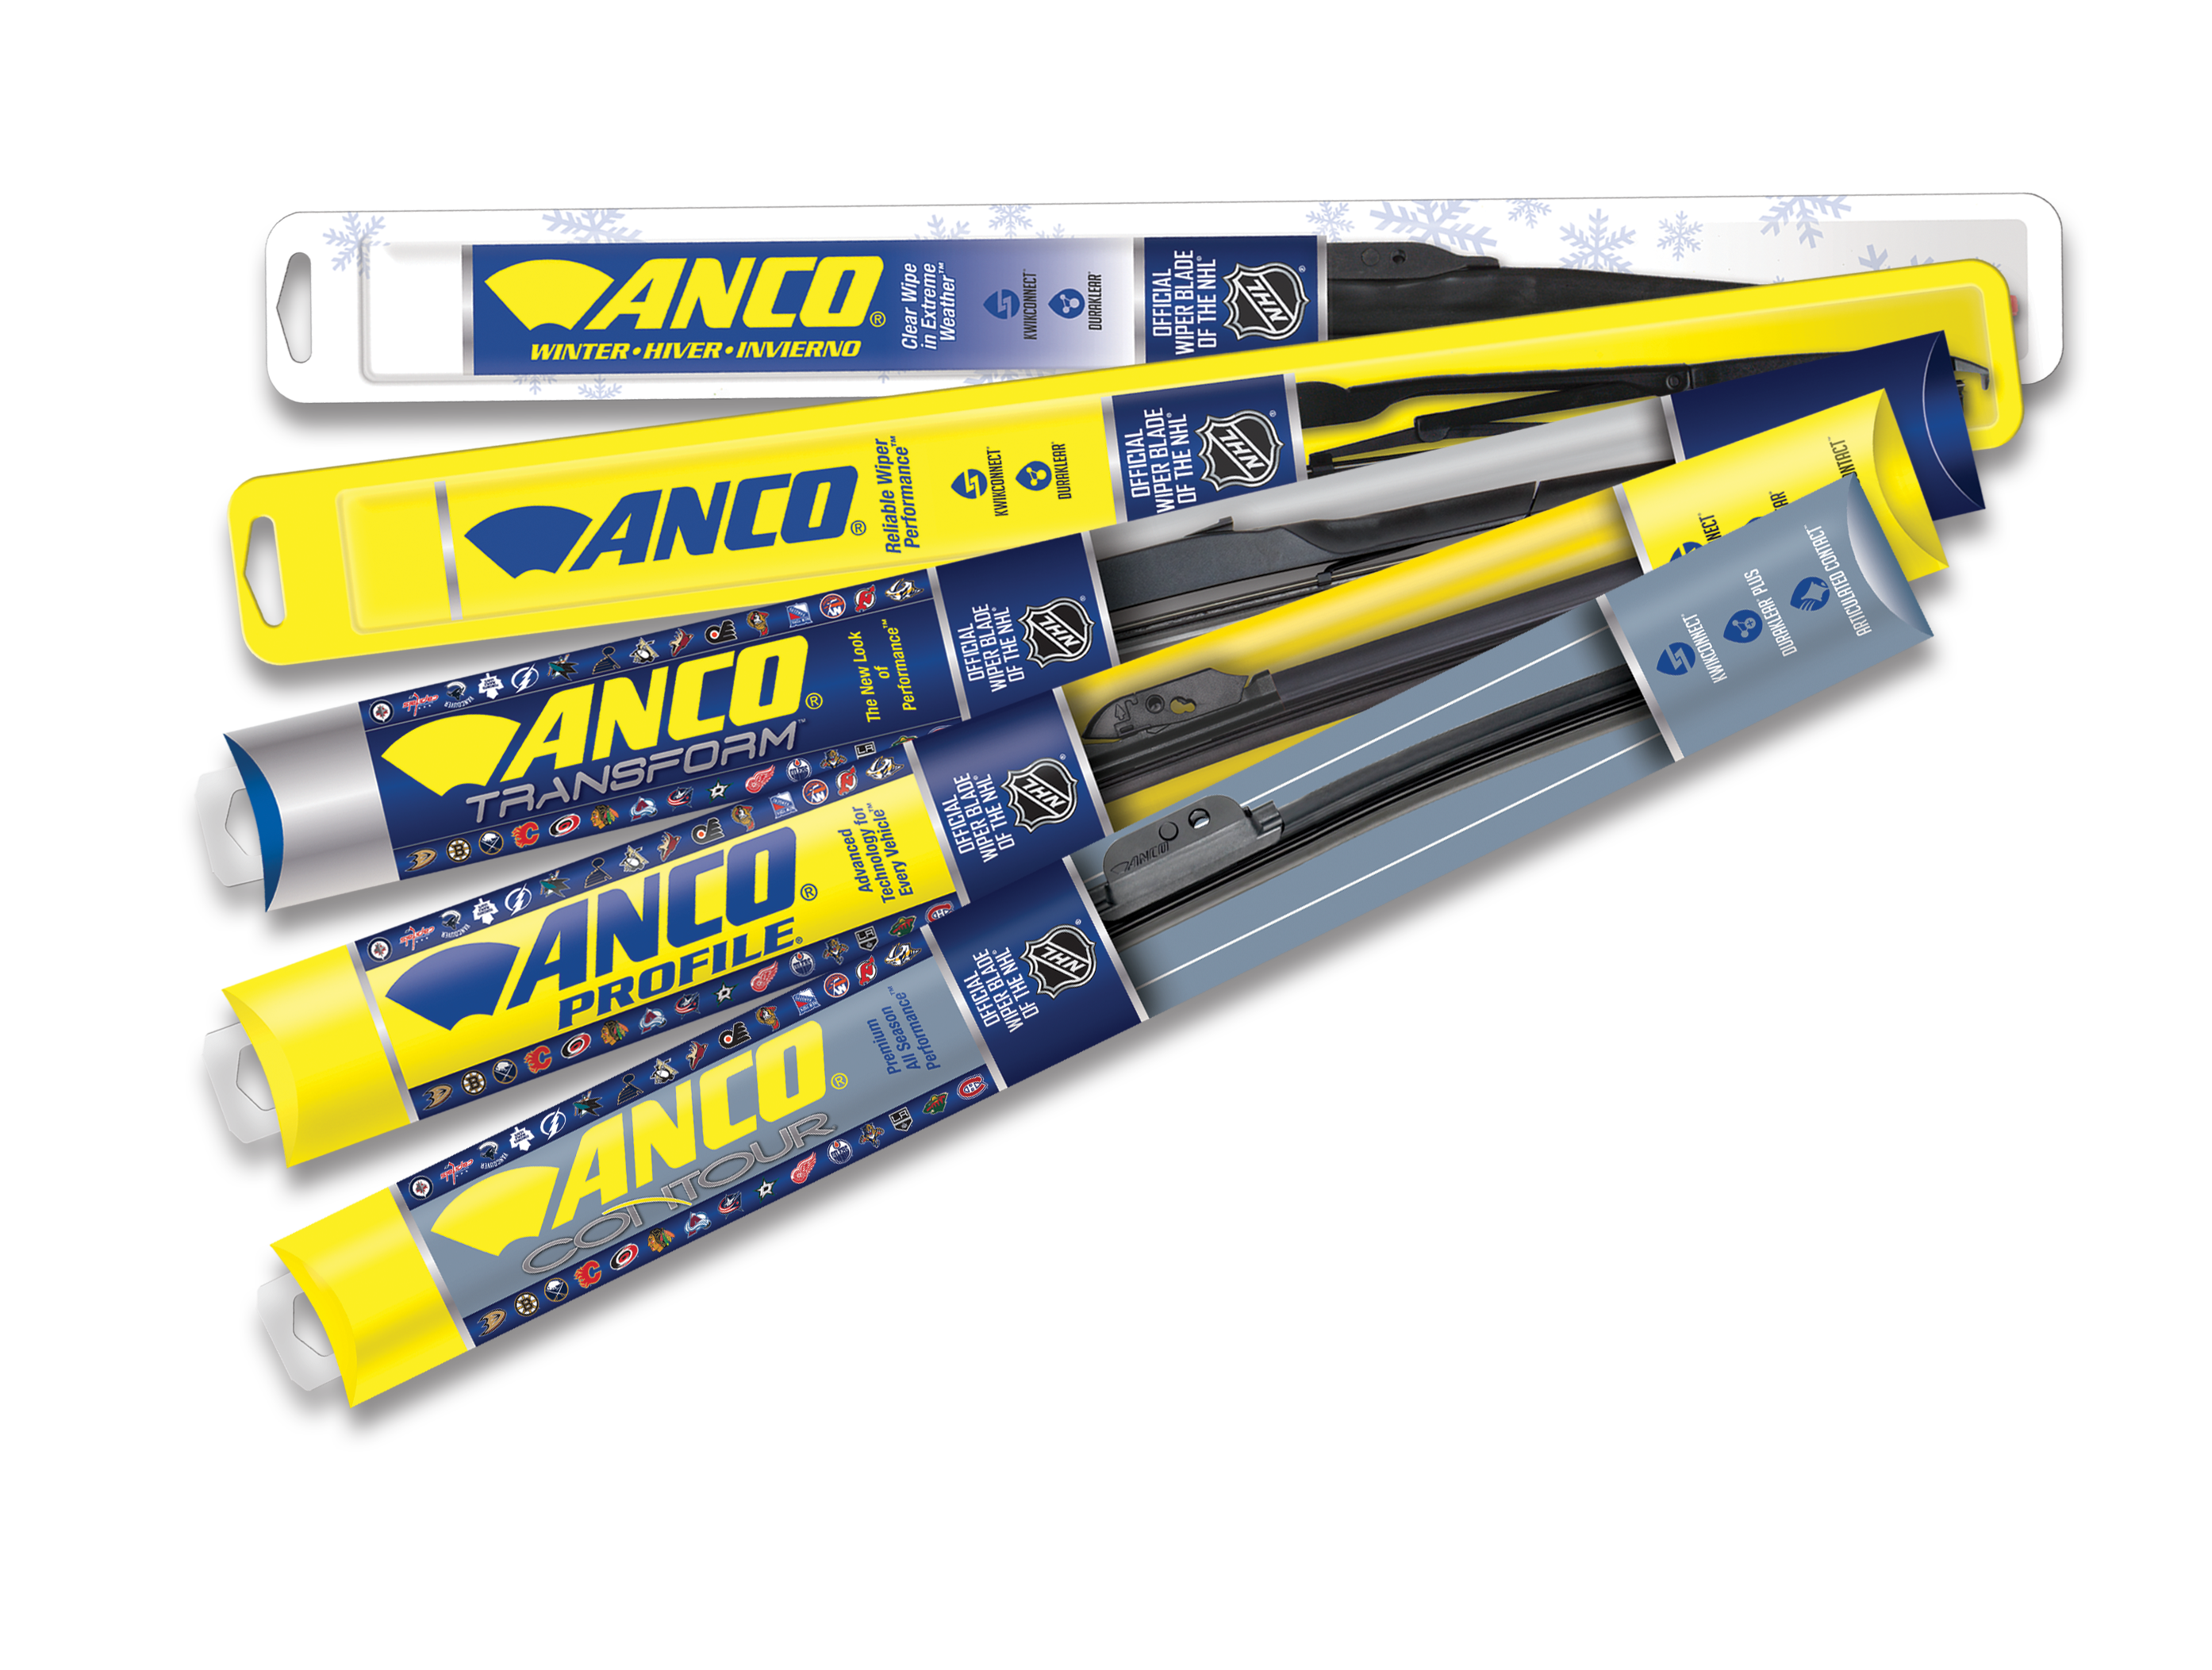 Anco Wiper Blades >> Save Up To 15 While Preparing For Fall Driving Season